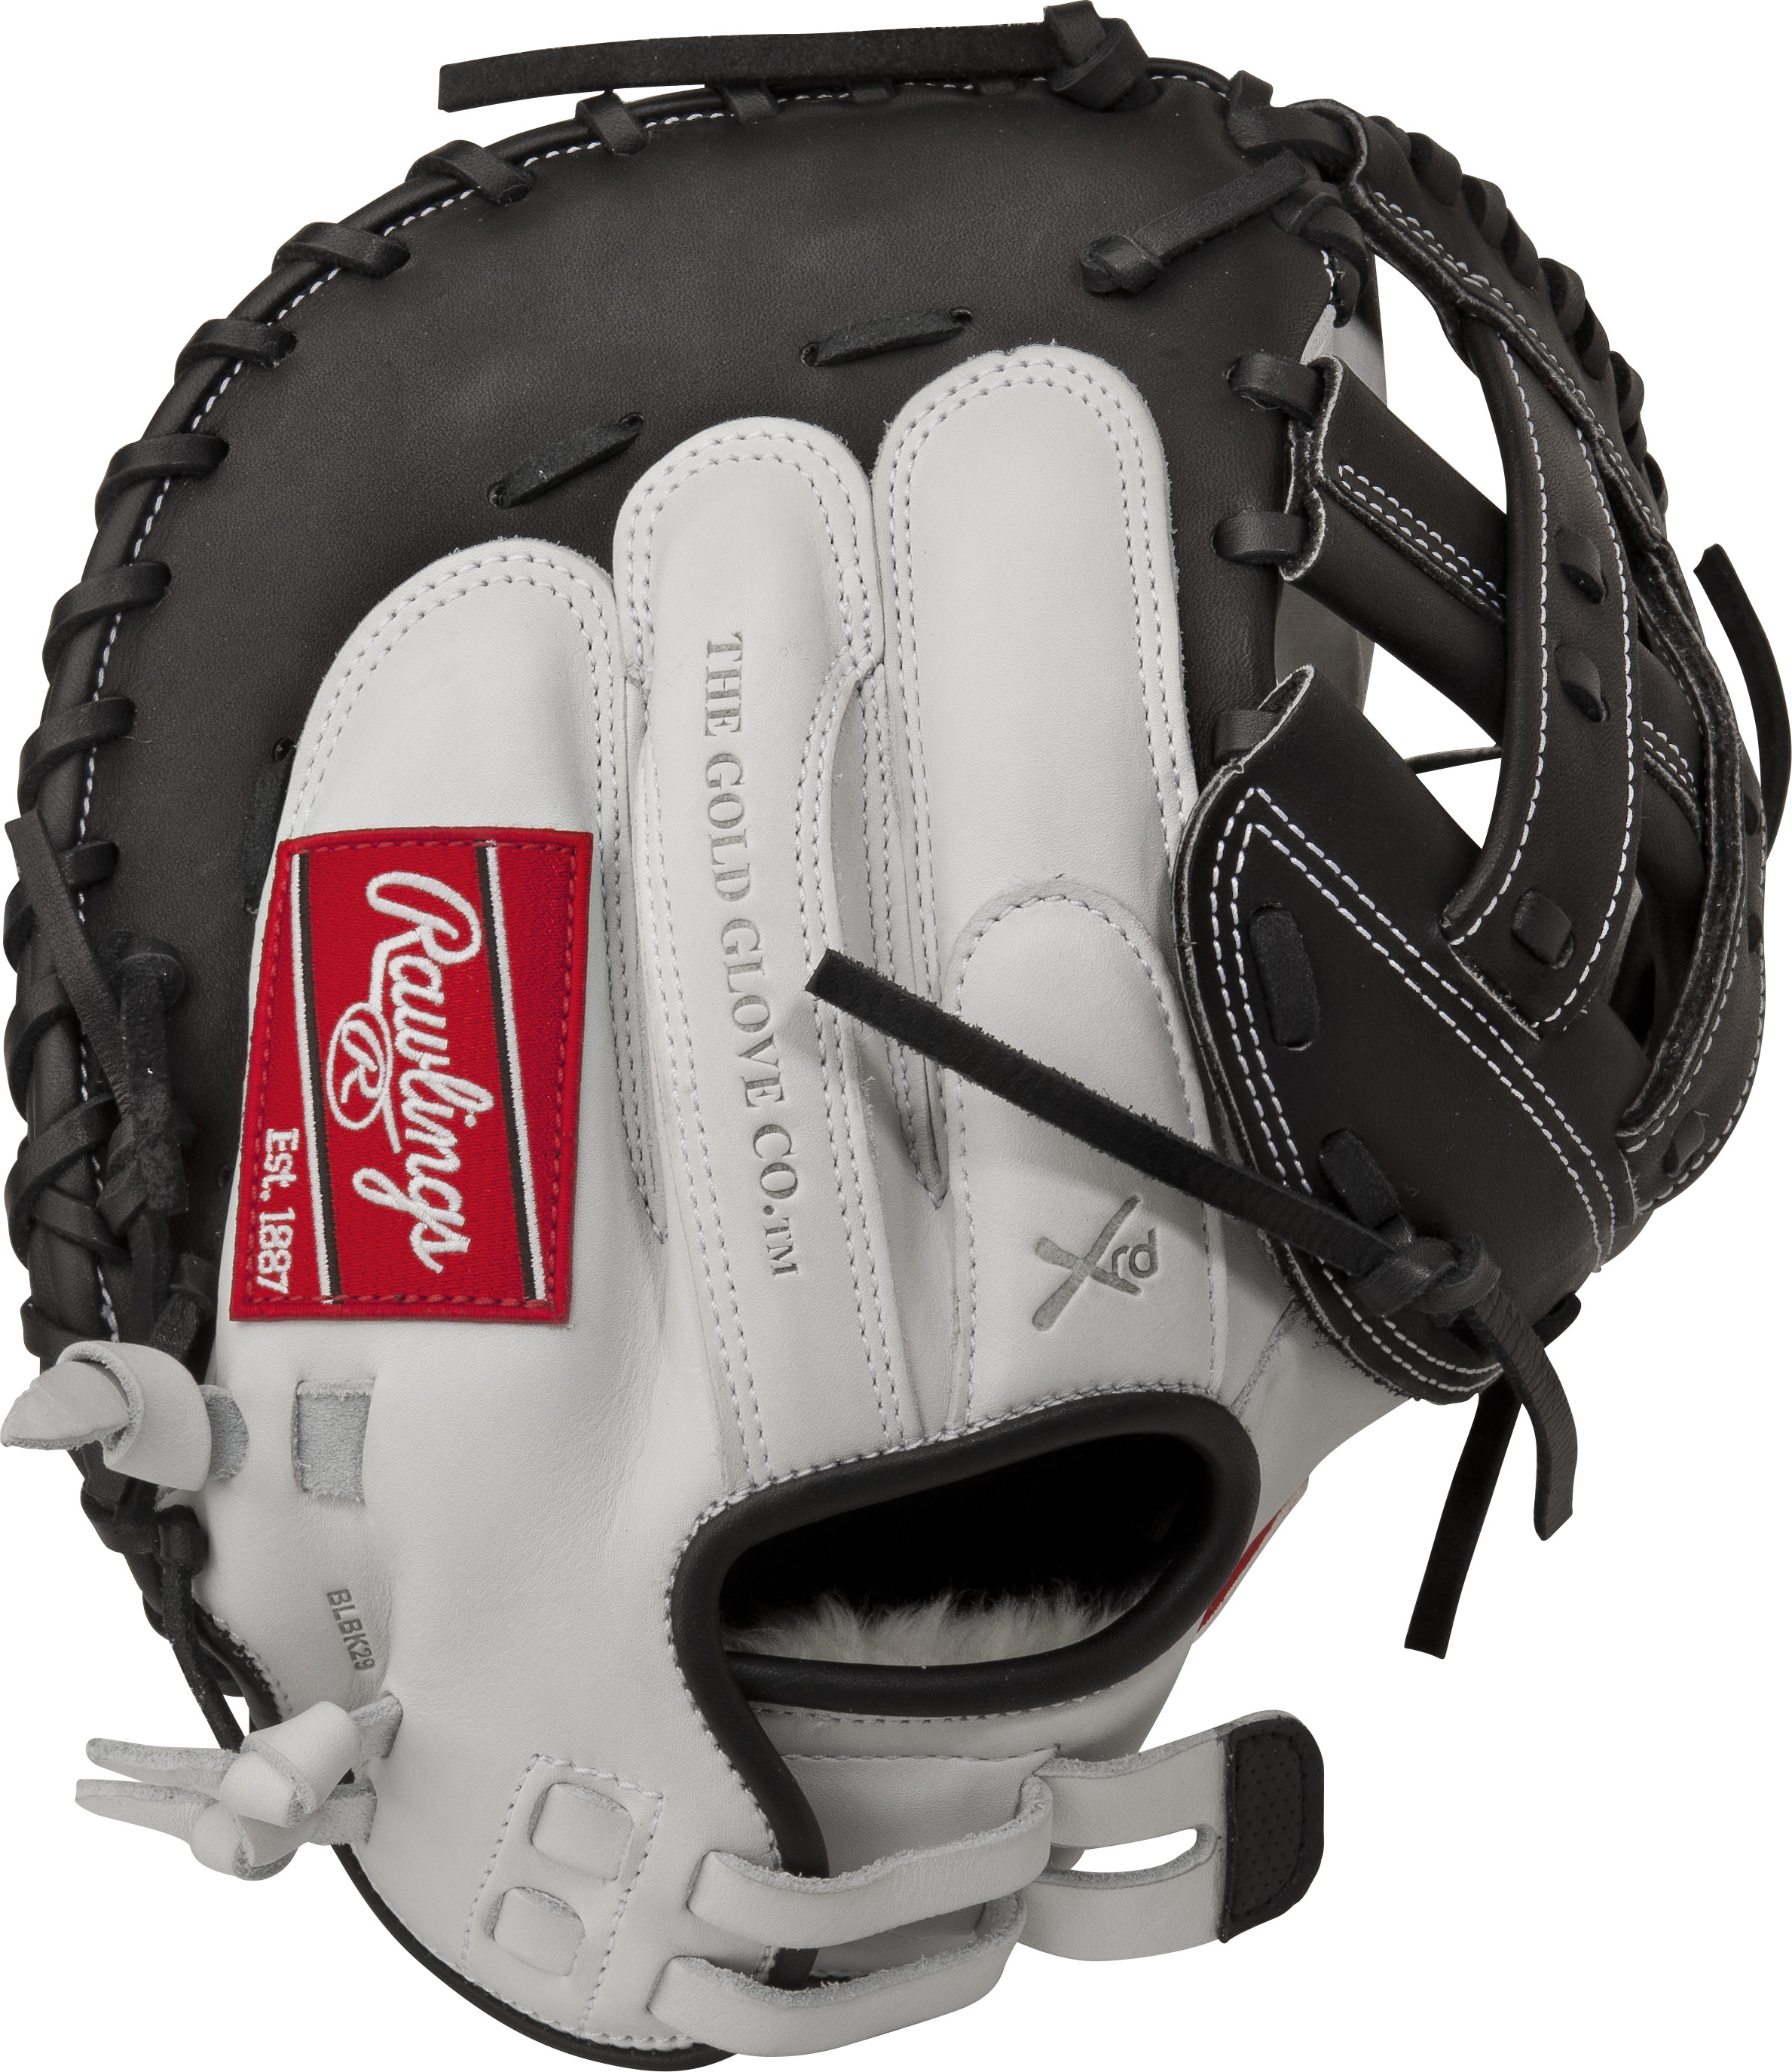 http://www.bestbatdeals.com/images/gloves/rawlings/RLACM33_back.jpg